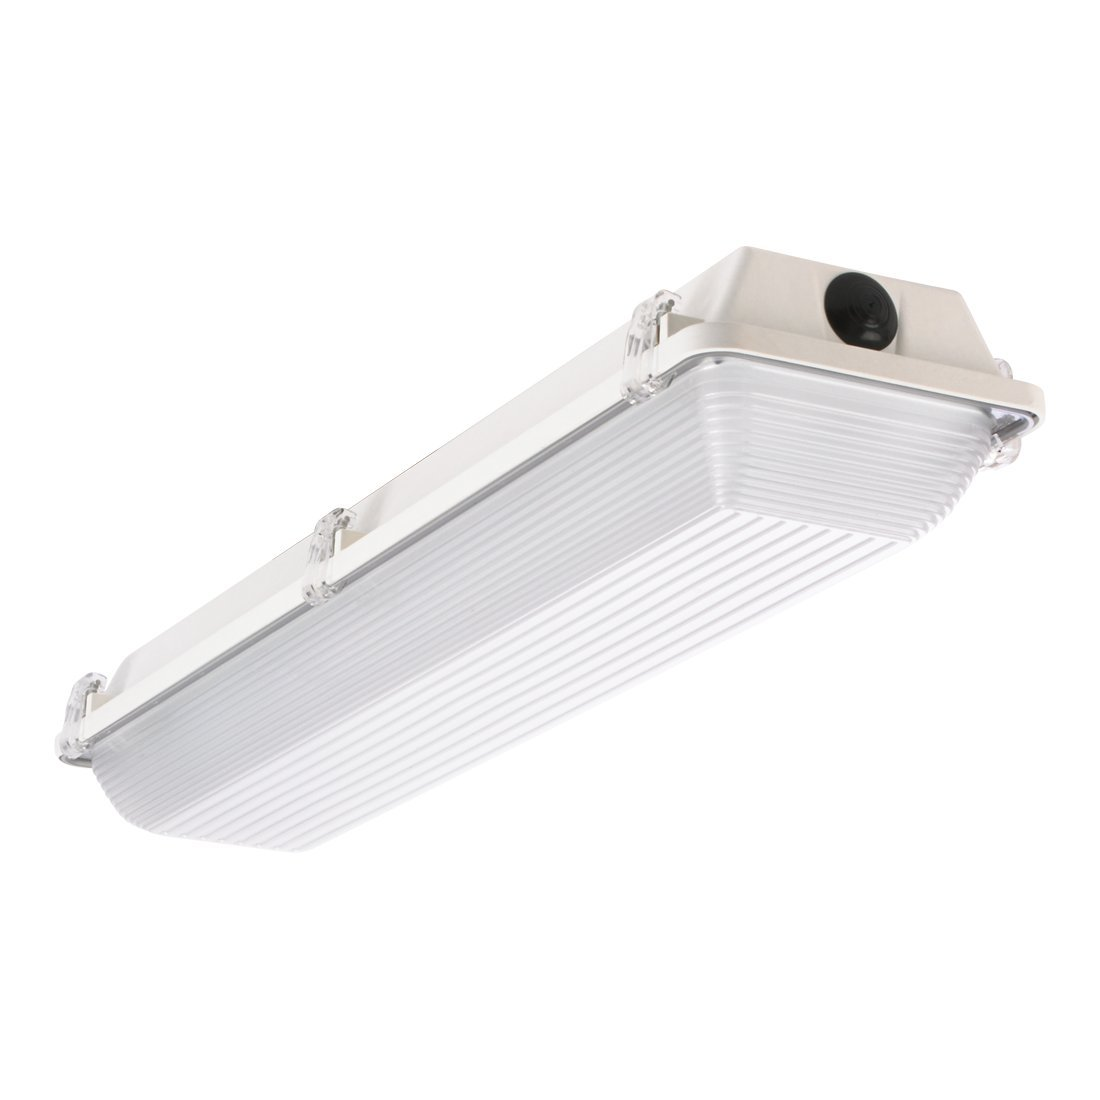 Atlas Lighting Products ILW25LED2D 2' 25 Watt LED Wet Location, 4148K Color Temperature, 2252 Lumens, 24.39 Watts